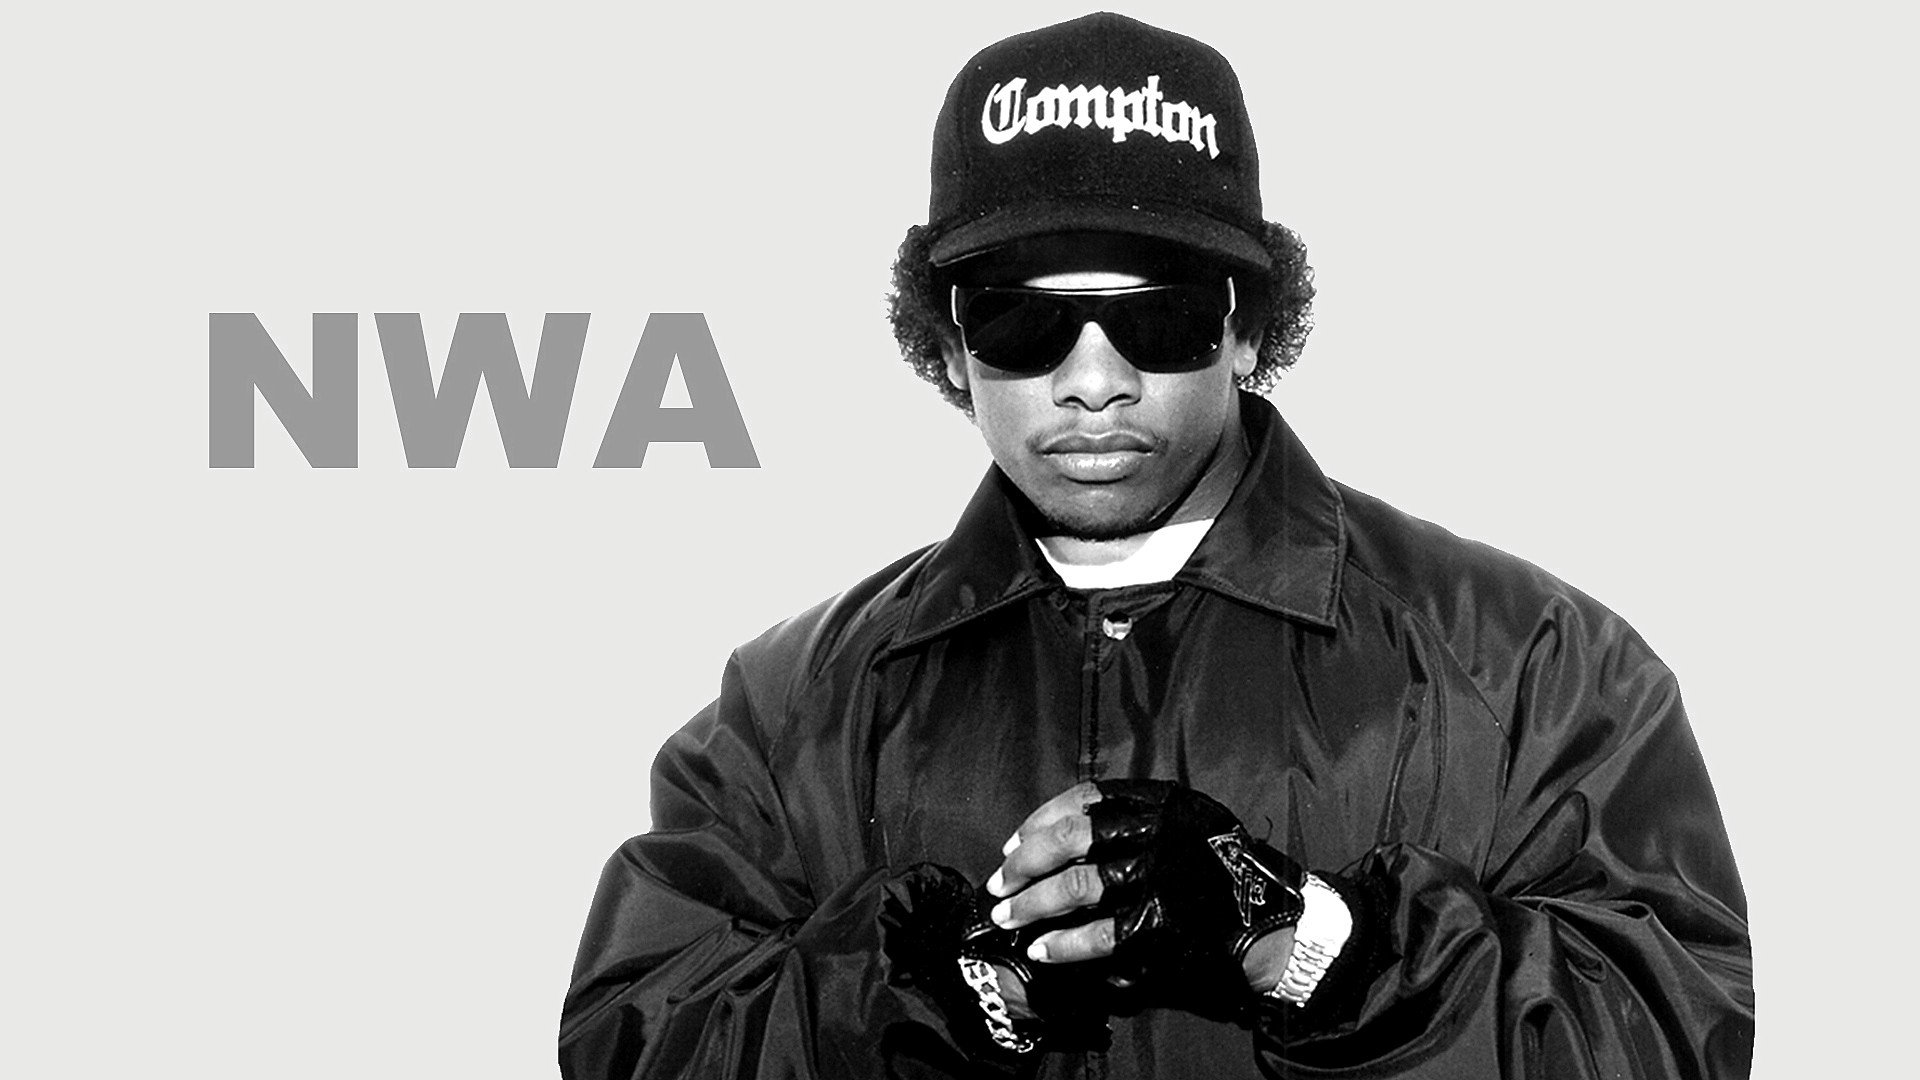 Eazy E Wallpapers 53 pictures 1920x1080